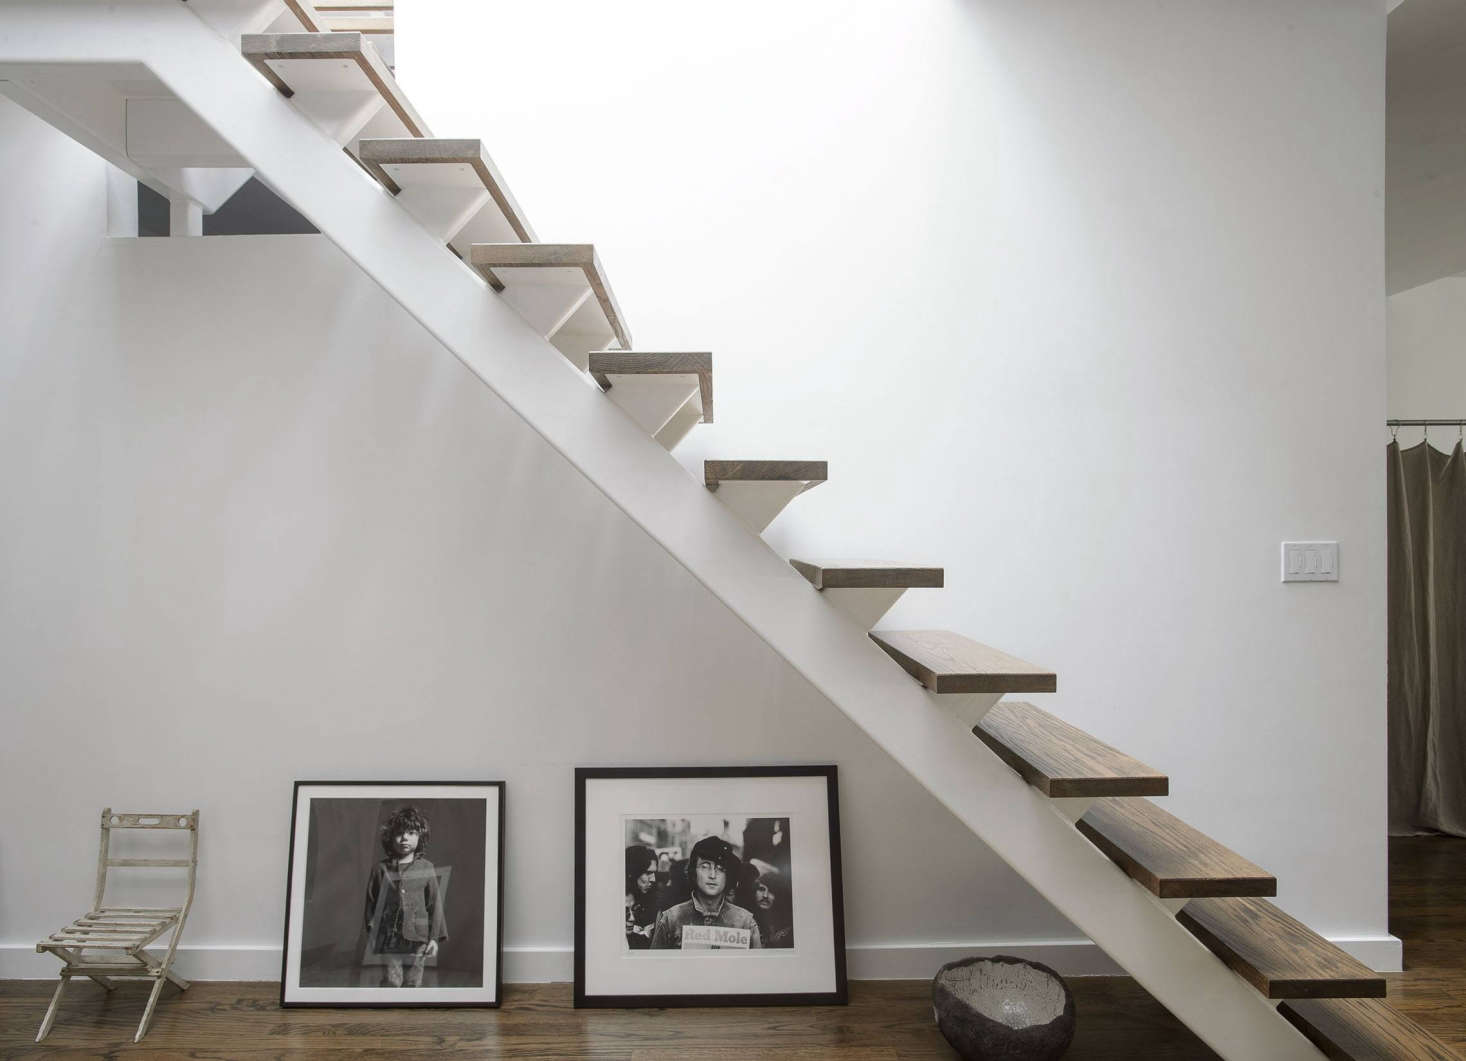 Under the stairs is an antique children's chair; a photograph by Inez & Vinoodh of their son, Charles Star; a Rowland Scherman photo of John Lennon; and a hand-shaped ceramic bowl by artist Genevieve Chevallier.